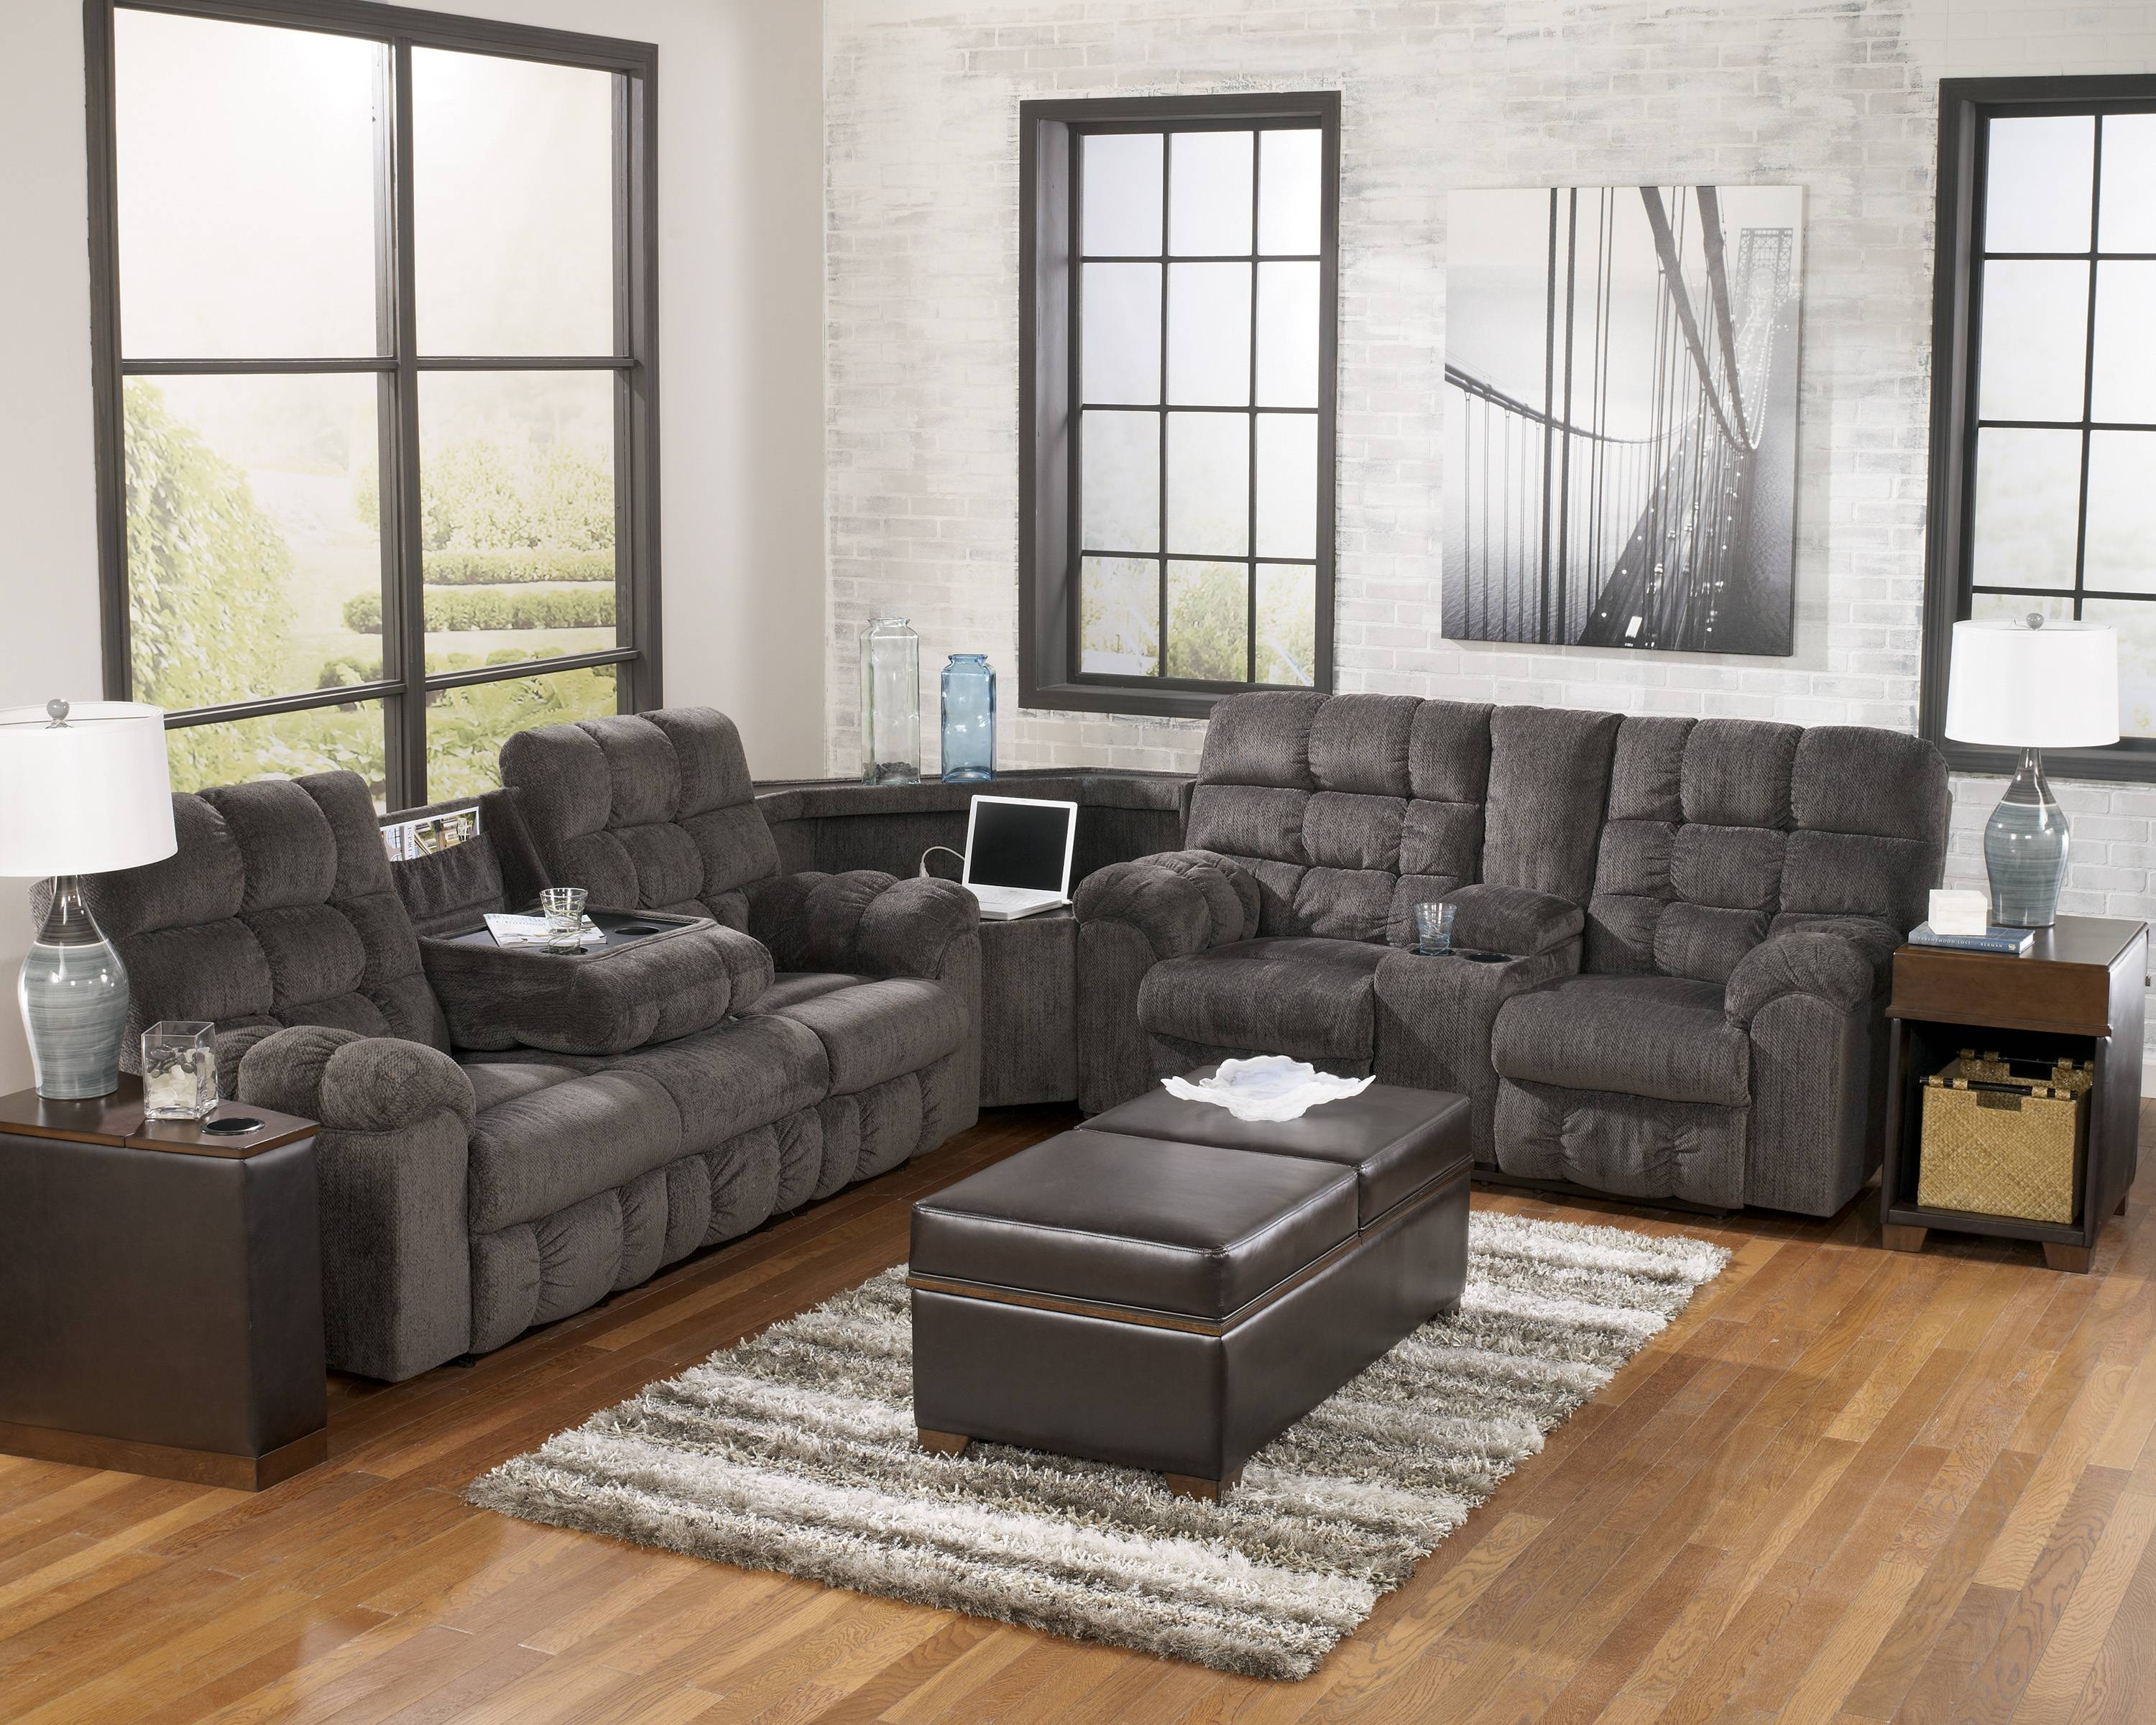 Sofas Center : Fantasticctional Sofas Ashley Furniture Images With Regard To Sectional Sofas Ashley Furniture (View 14 of 15)